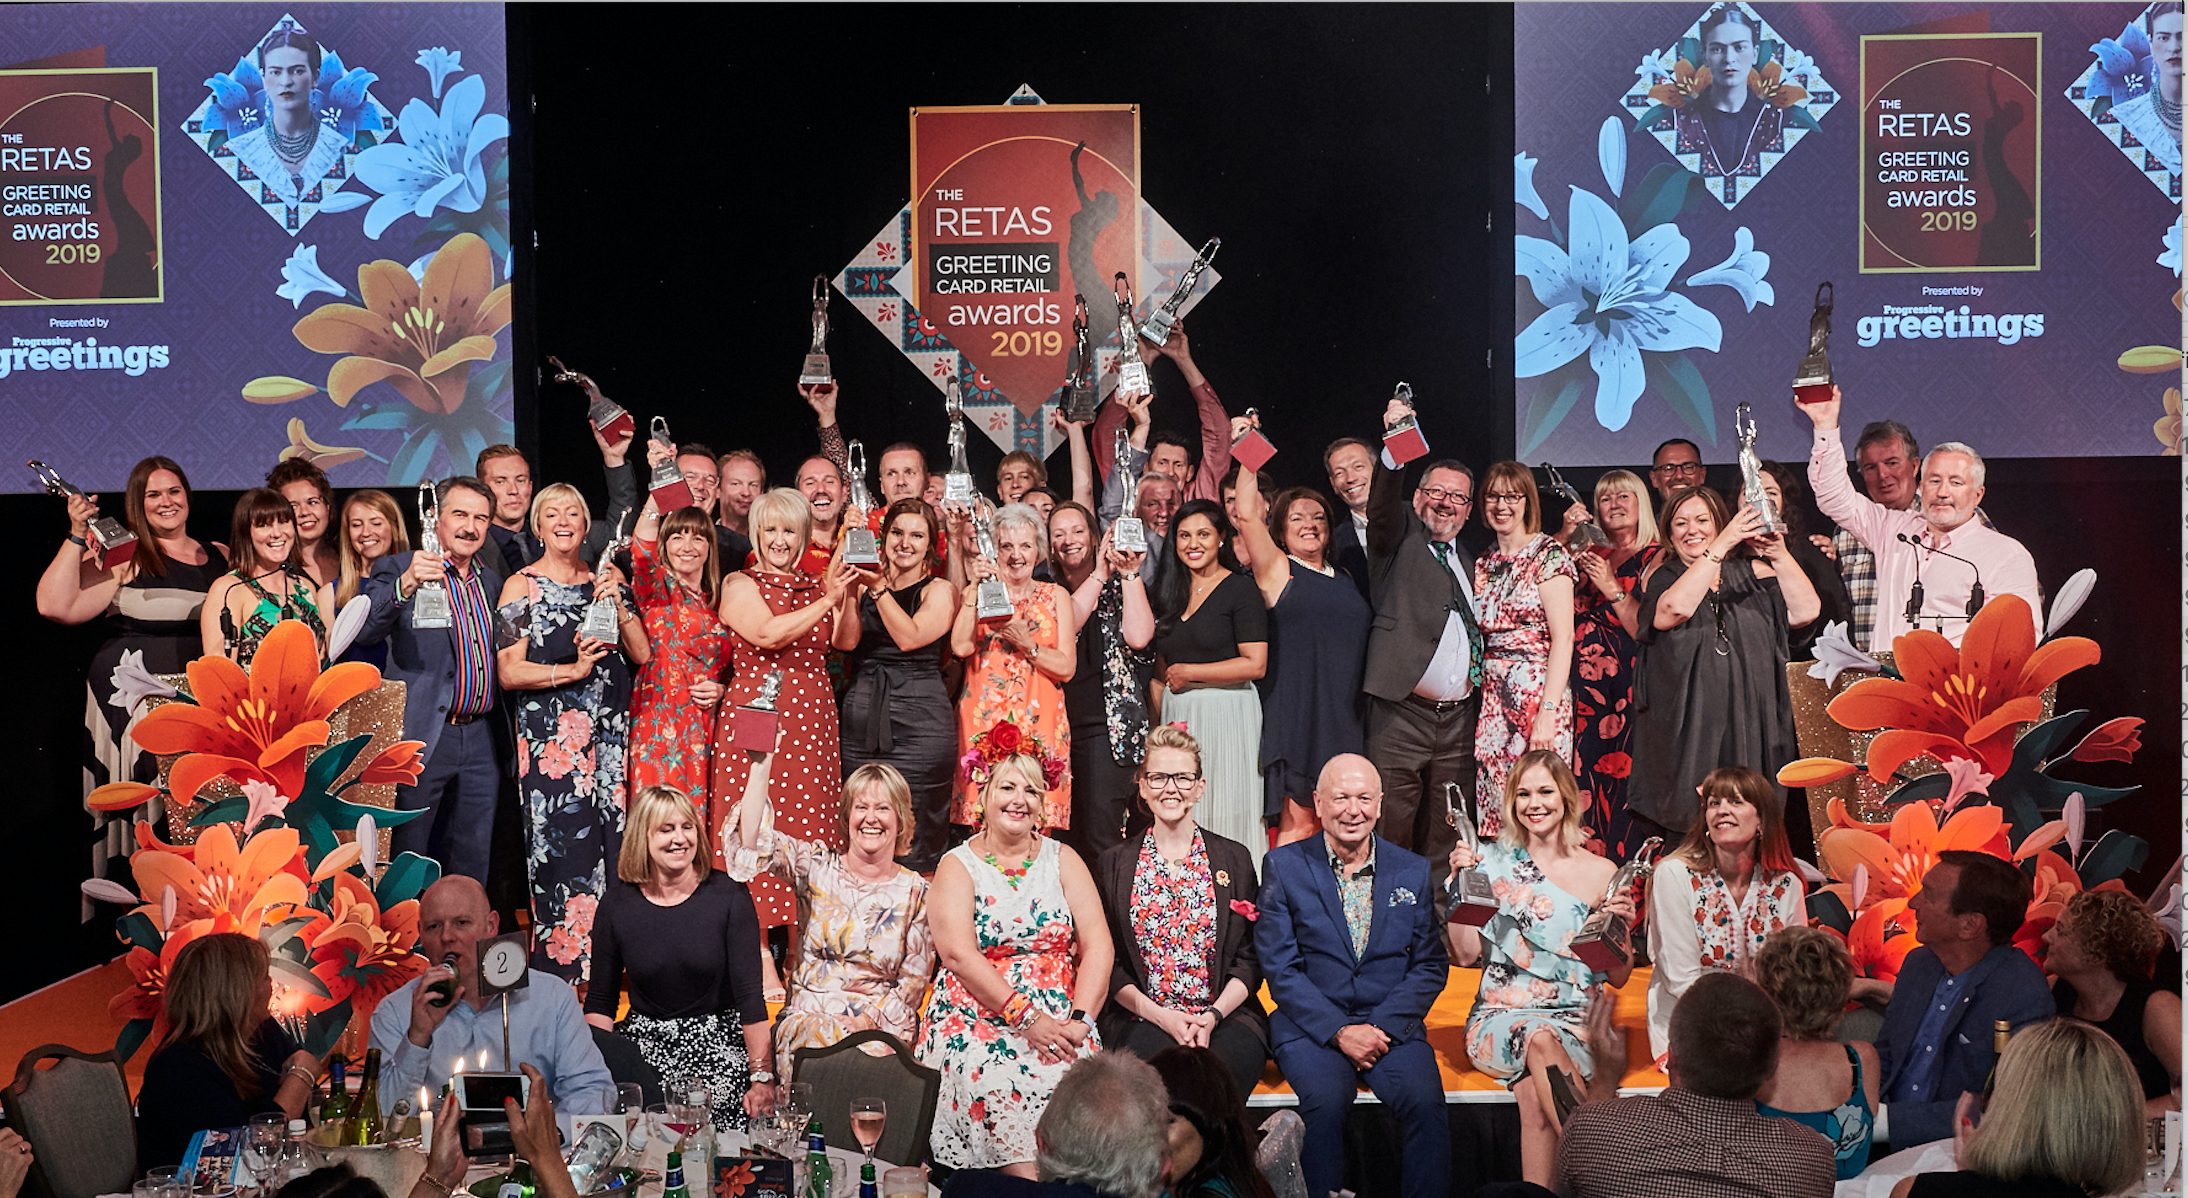 Above: Who will this year's Retas winners be? The last Retas awards event was in 2019 when it took on a Frida Kahlo theme.